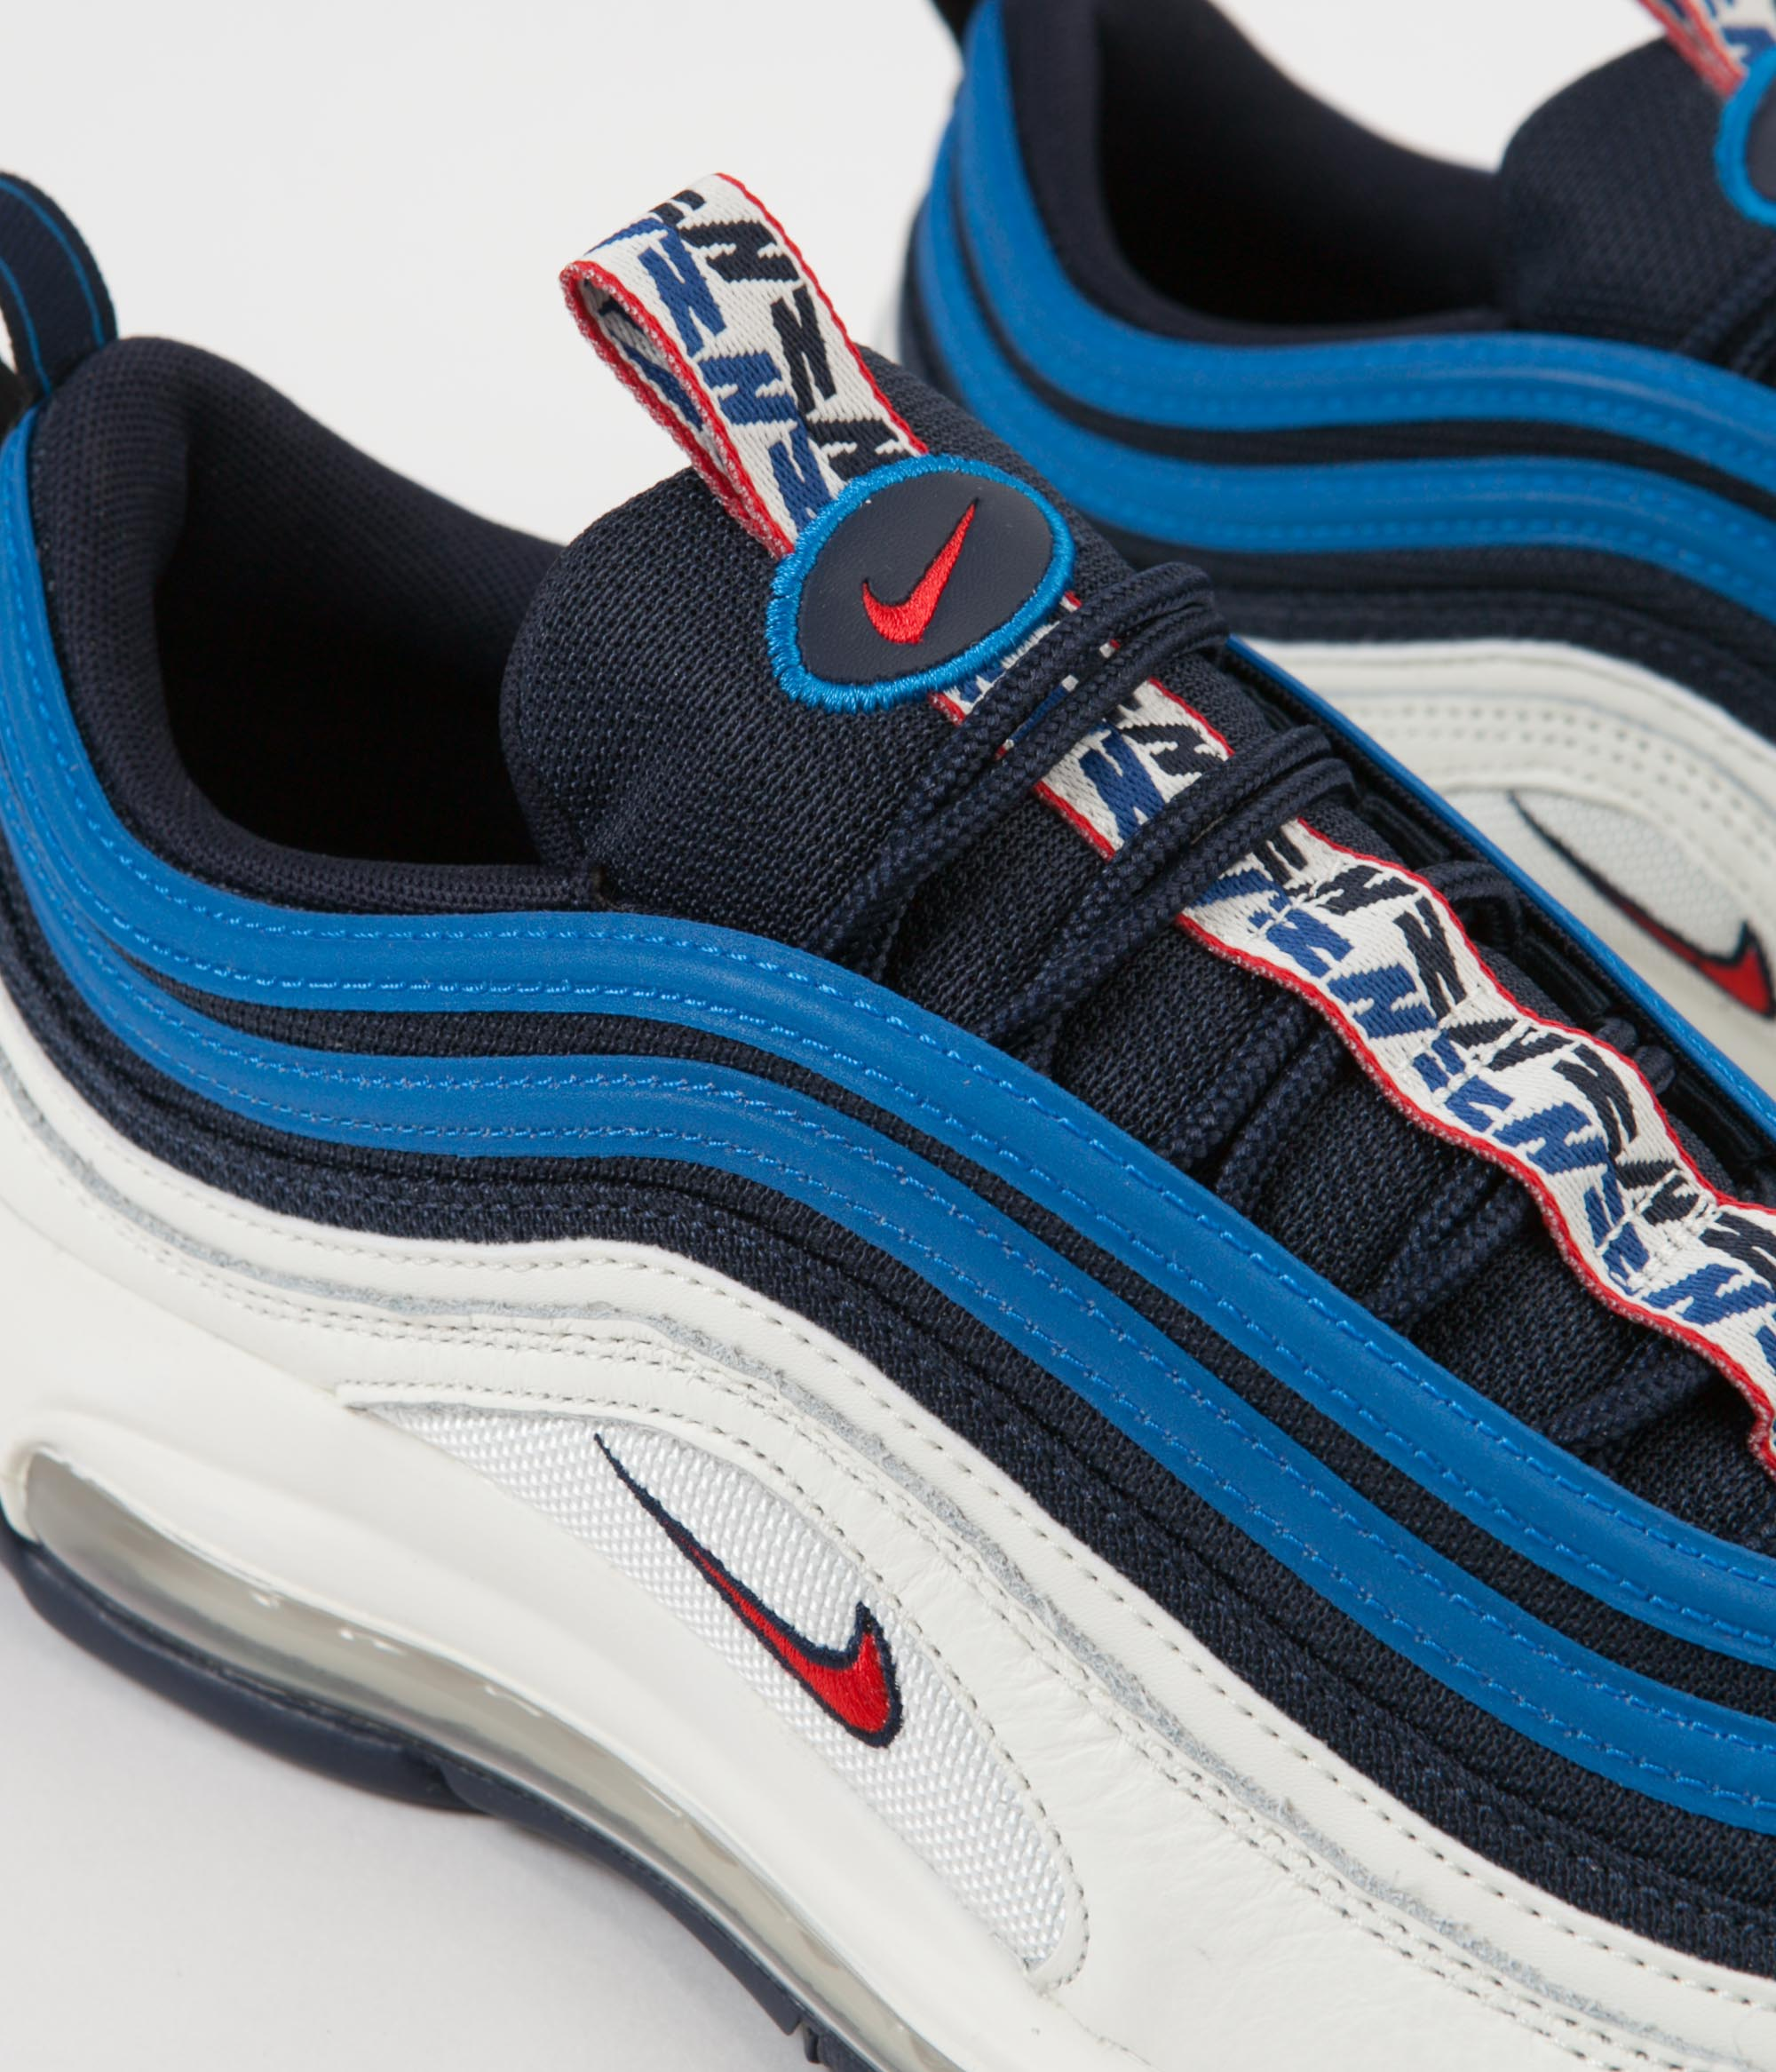 Nike Air Max 97 SE (Obsidian University Red Sail Blue Nebula) AQ4126 400